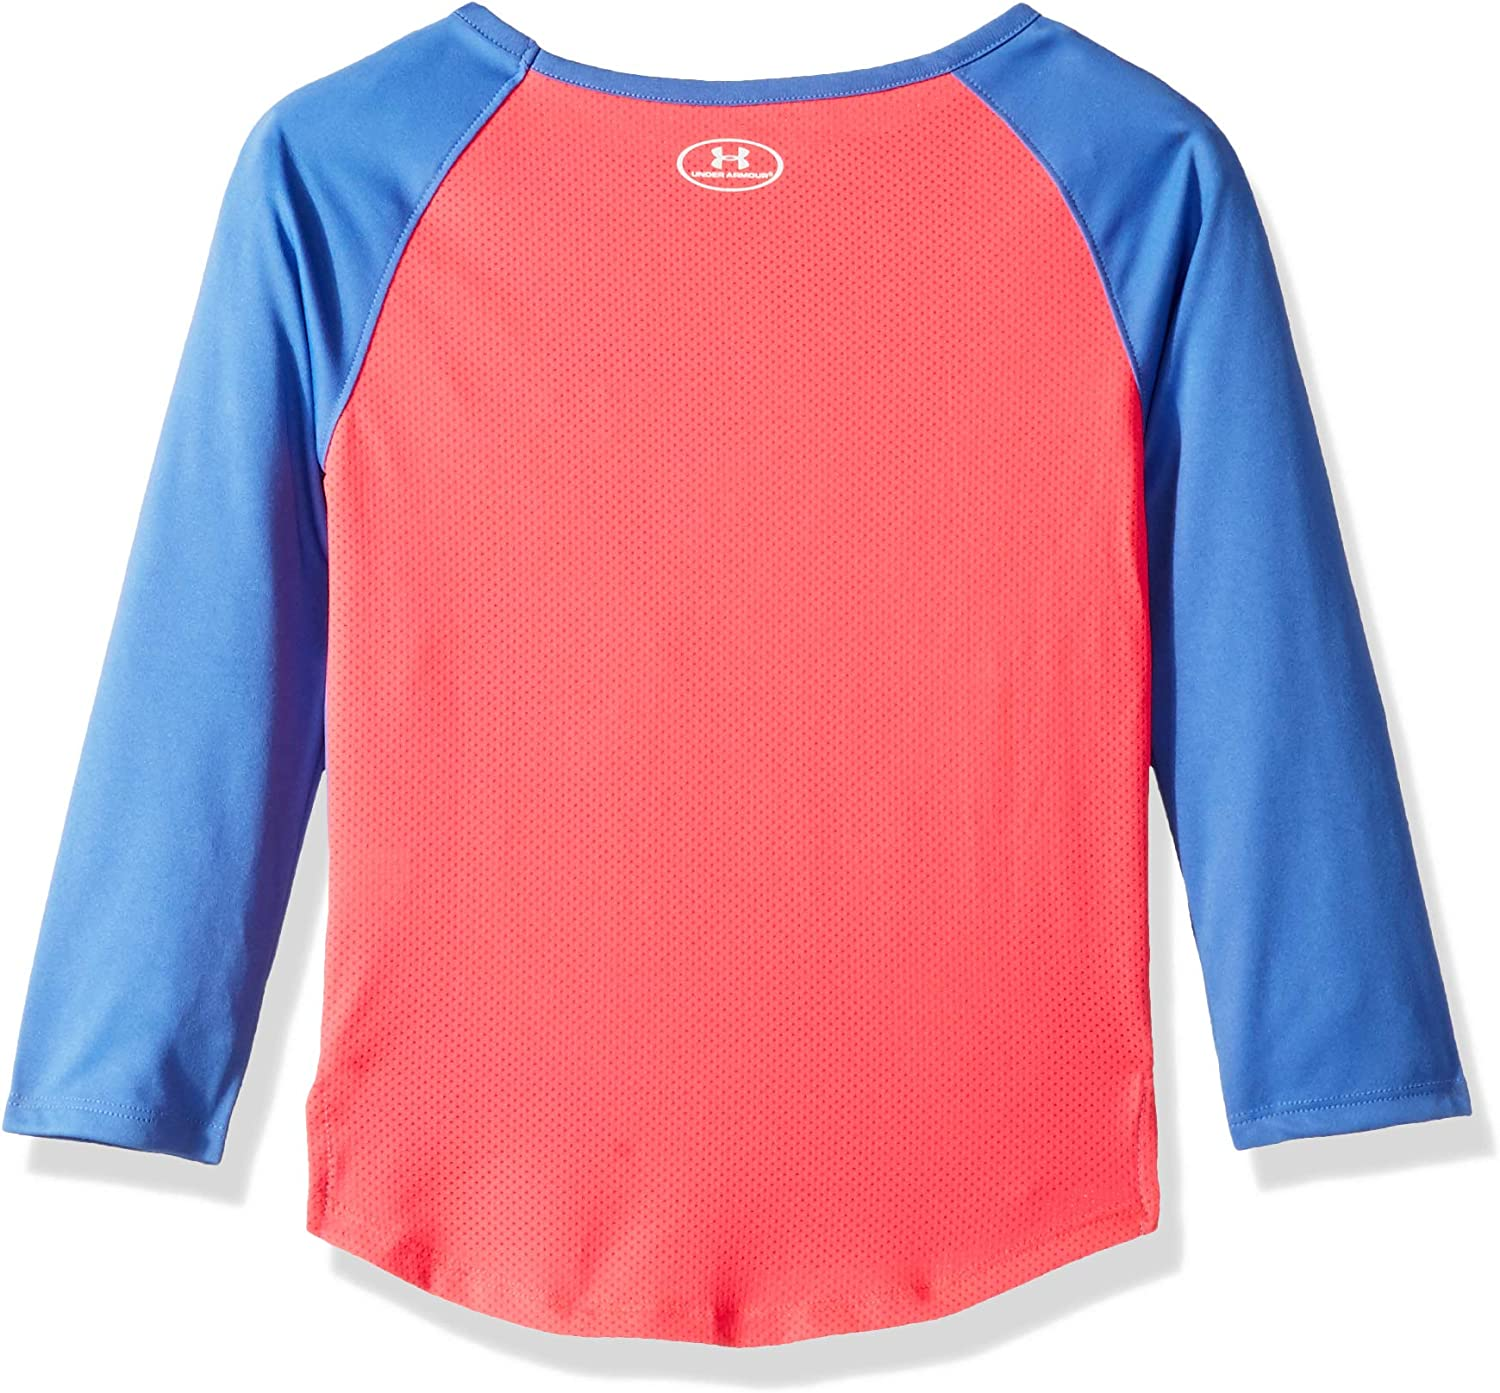 Under Armour Girls Long Sleeve Graphic Tee